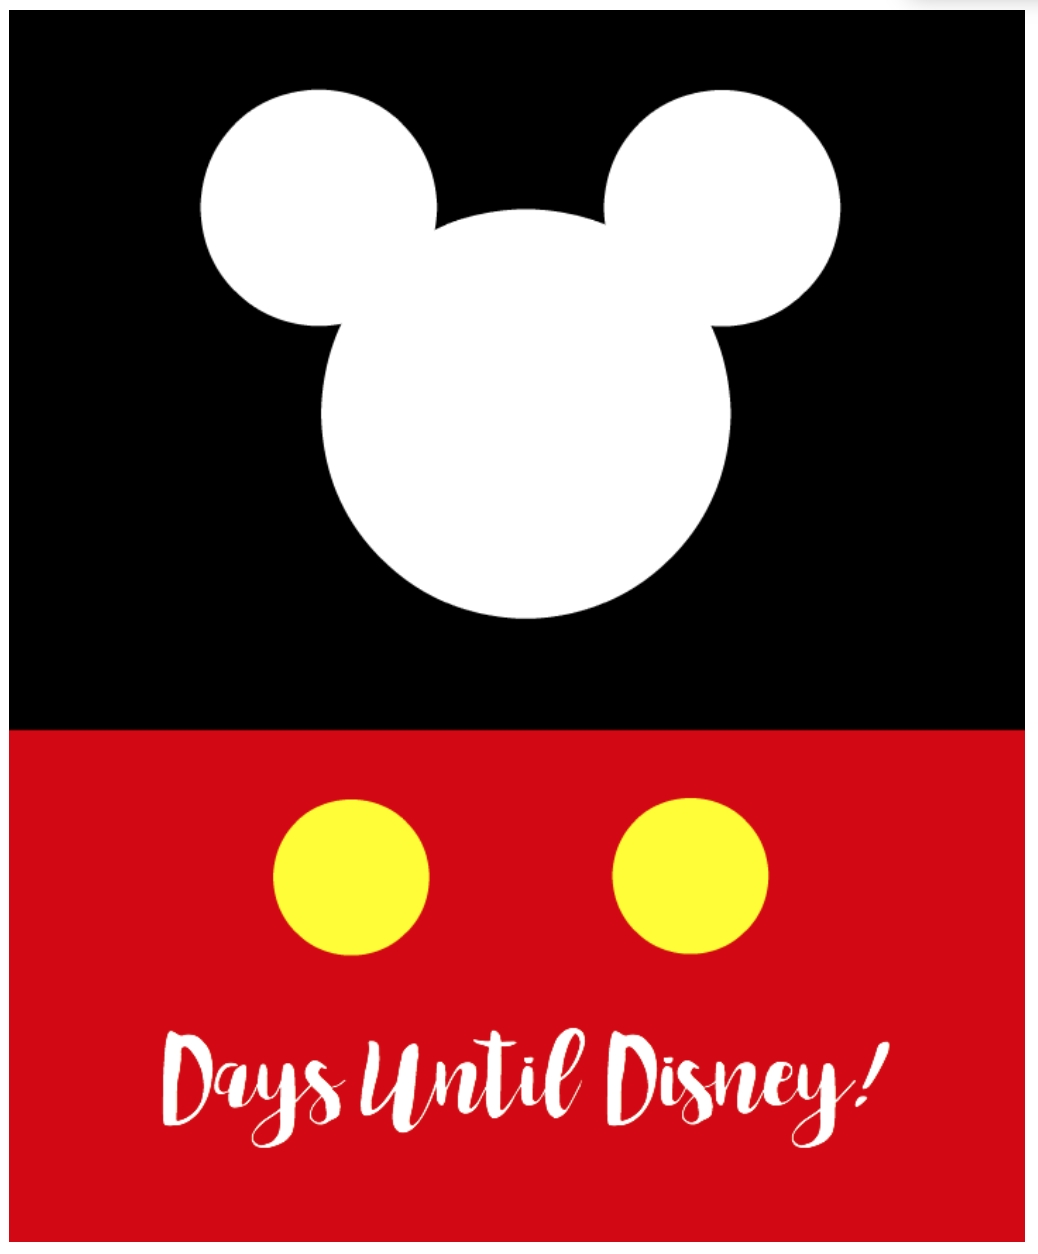 Days Until Disney Printable   Simply Being Mommy Dashing Printable Count Down To Disney